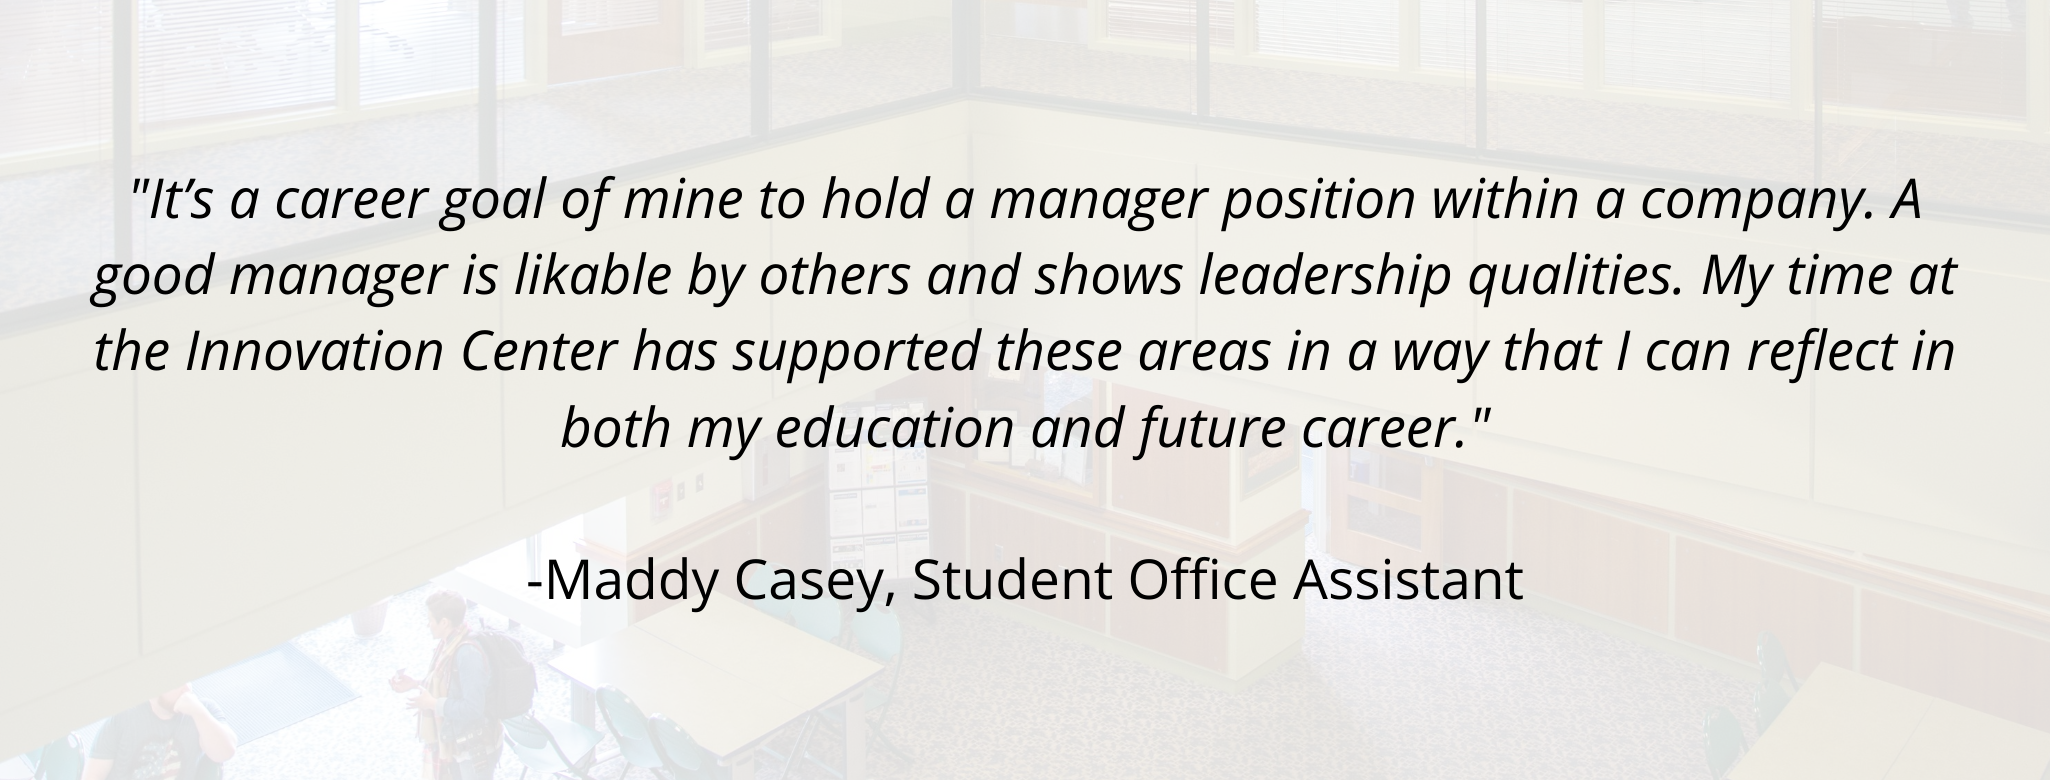 """It's a career goal of mine to hold a manager position within a company. A good manager is likable by others and shows leadership qualities. My time at the Innovation Center has supported these areas in a way that I can reflect in both my education and future career.""  -Maddy Casey, Student Office Assistant"